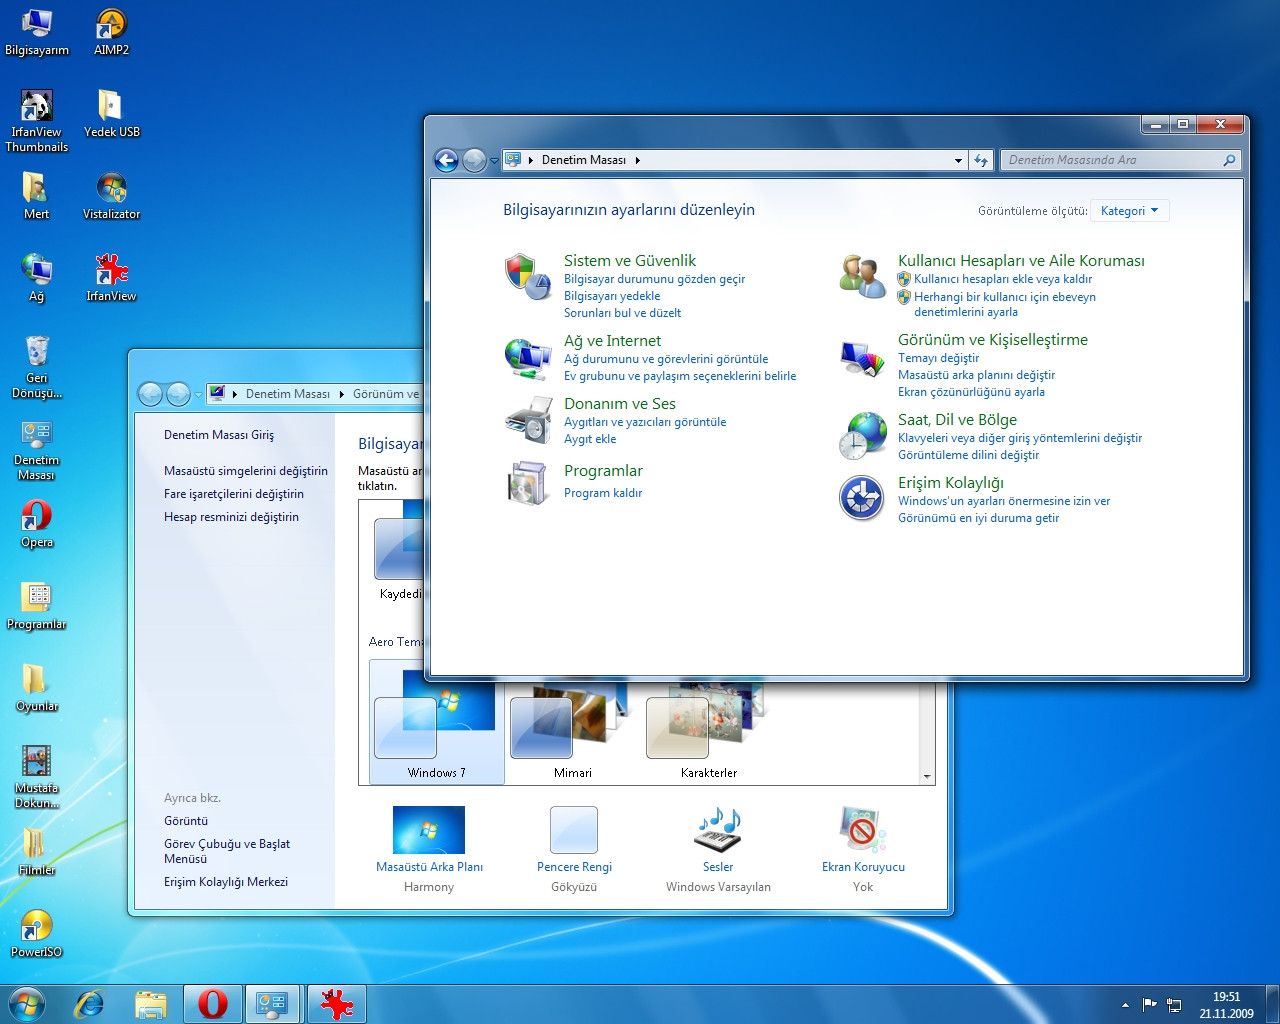 Windows 7 professional türkçe orjinal i̇so i̇ndir full vv | full.